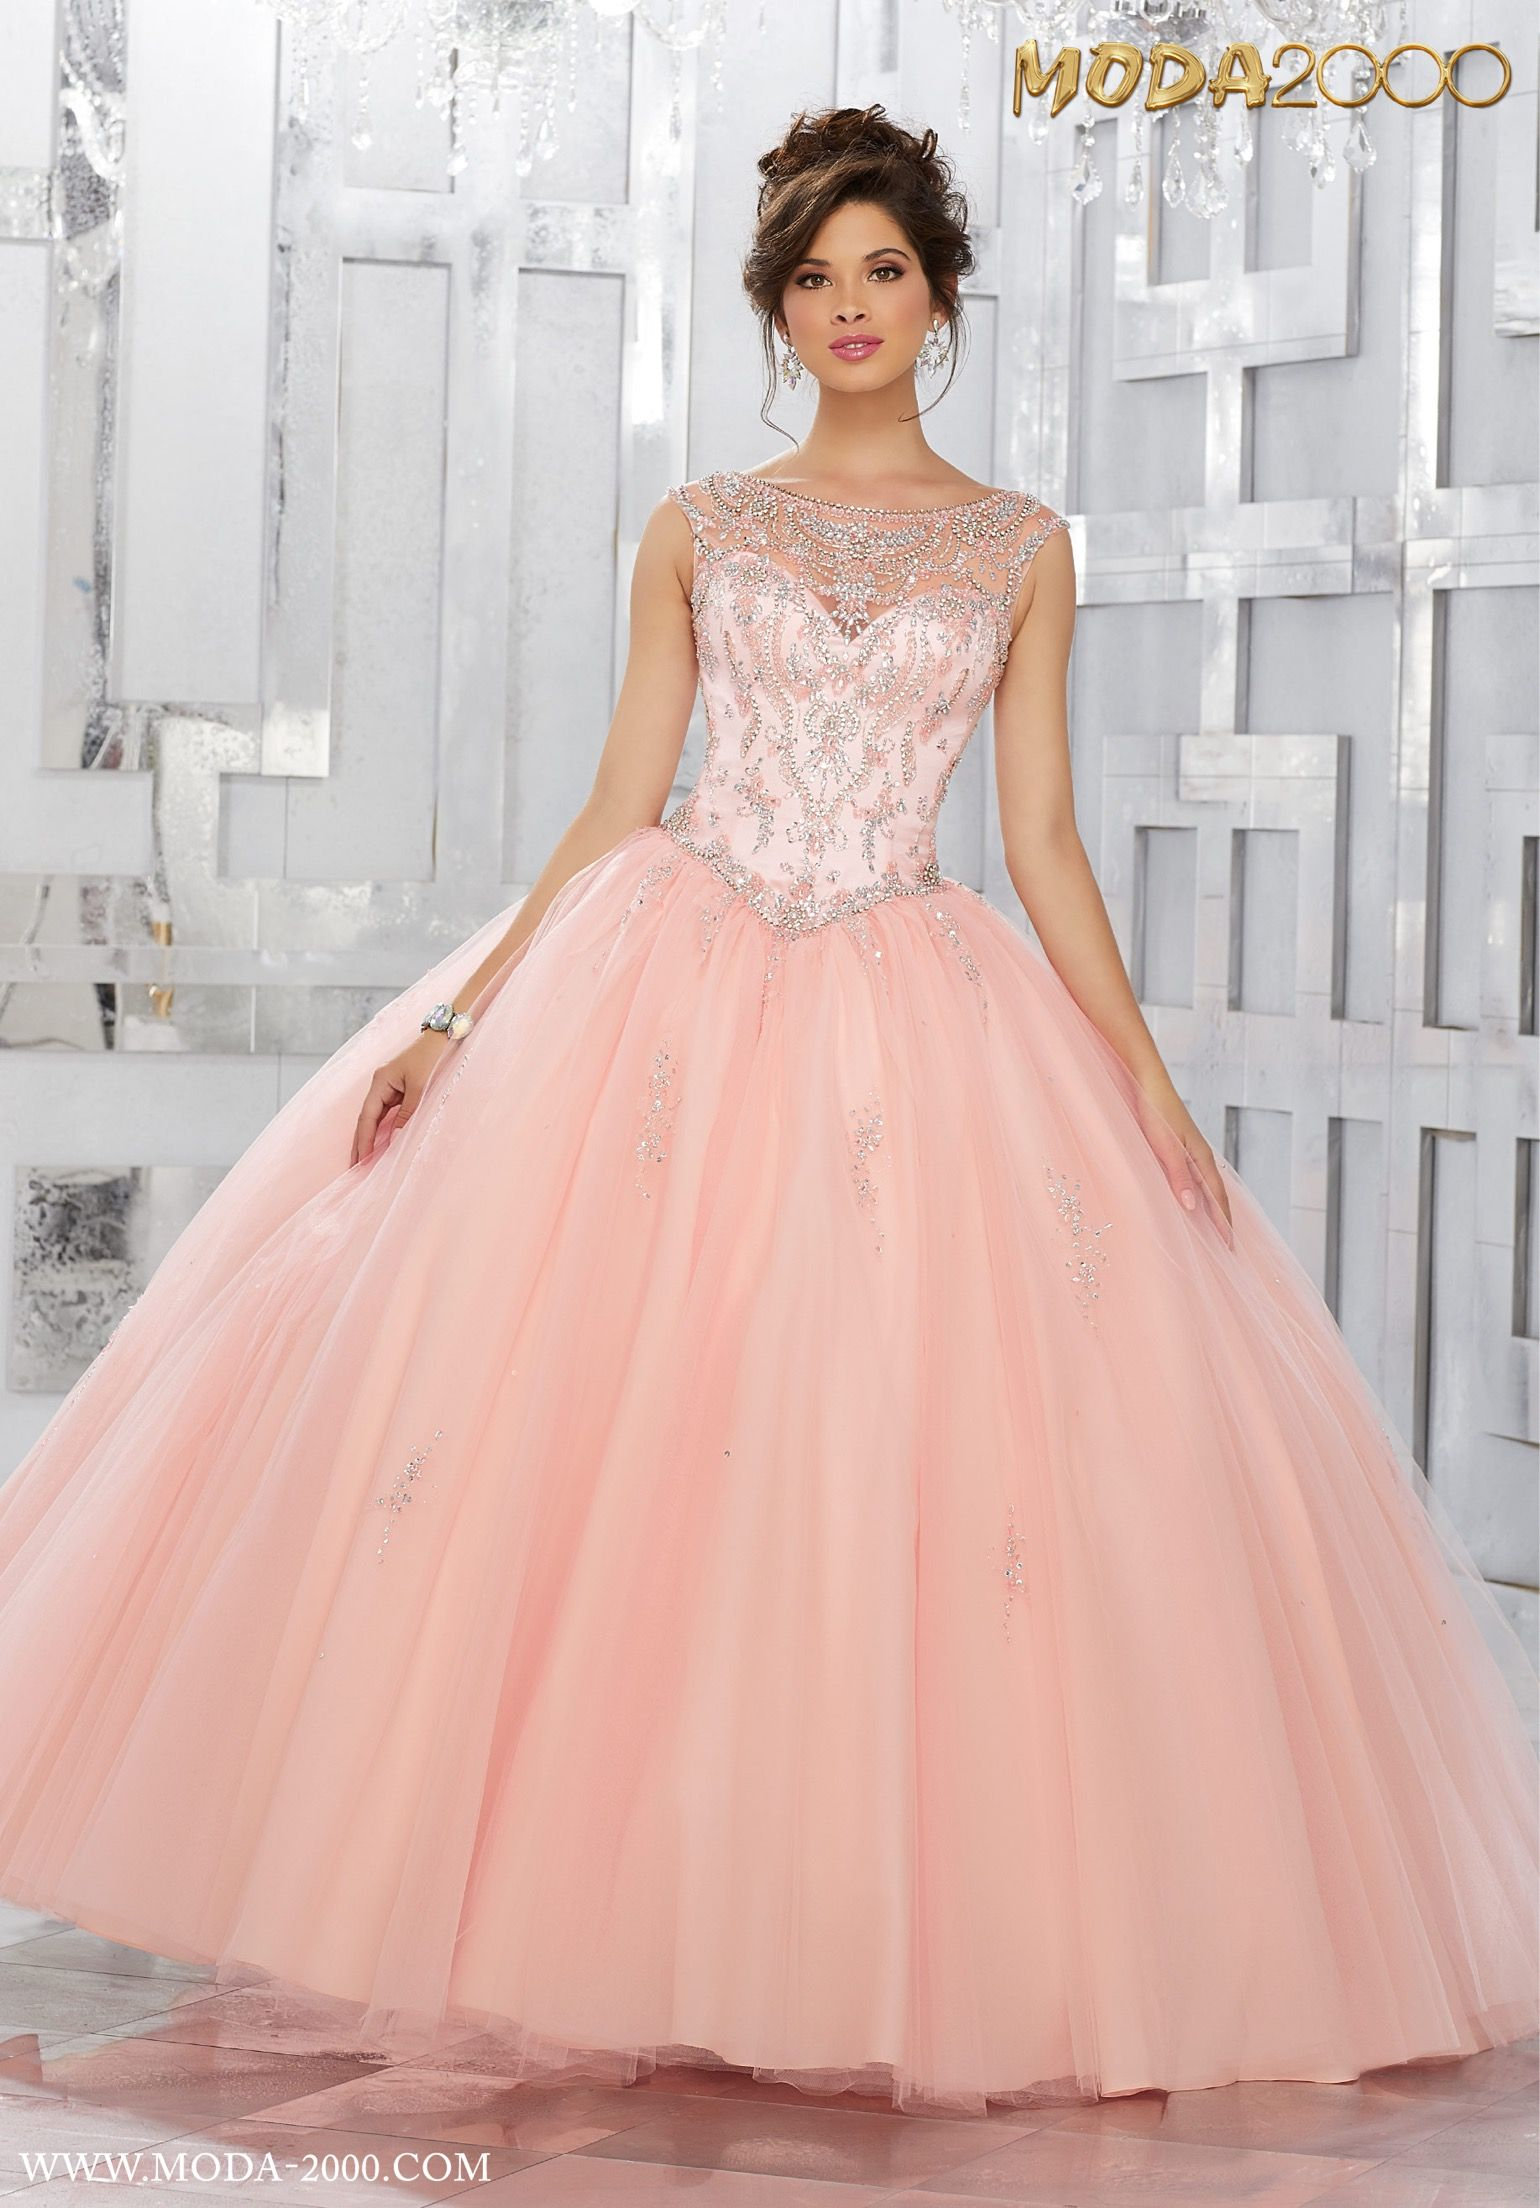 38db87098e9 MODA 2000 BEAUTIFUL PINK QUINCEANERA DRESS! Follow us on instagram for  daily updates  moda 2000